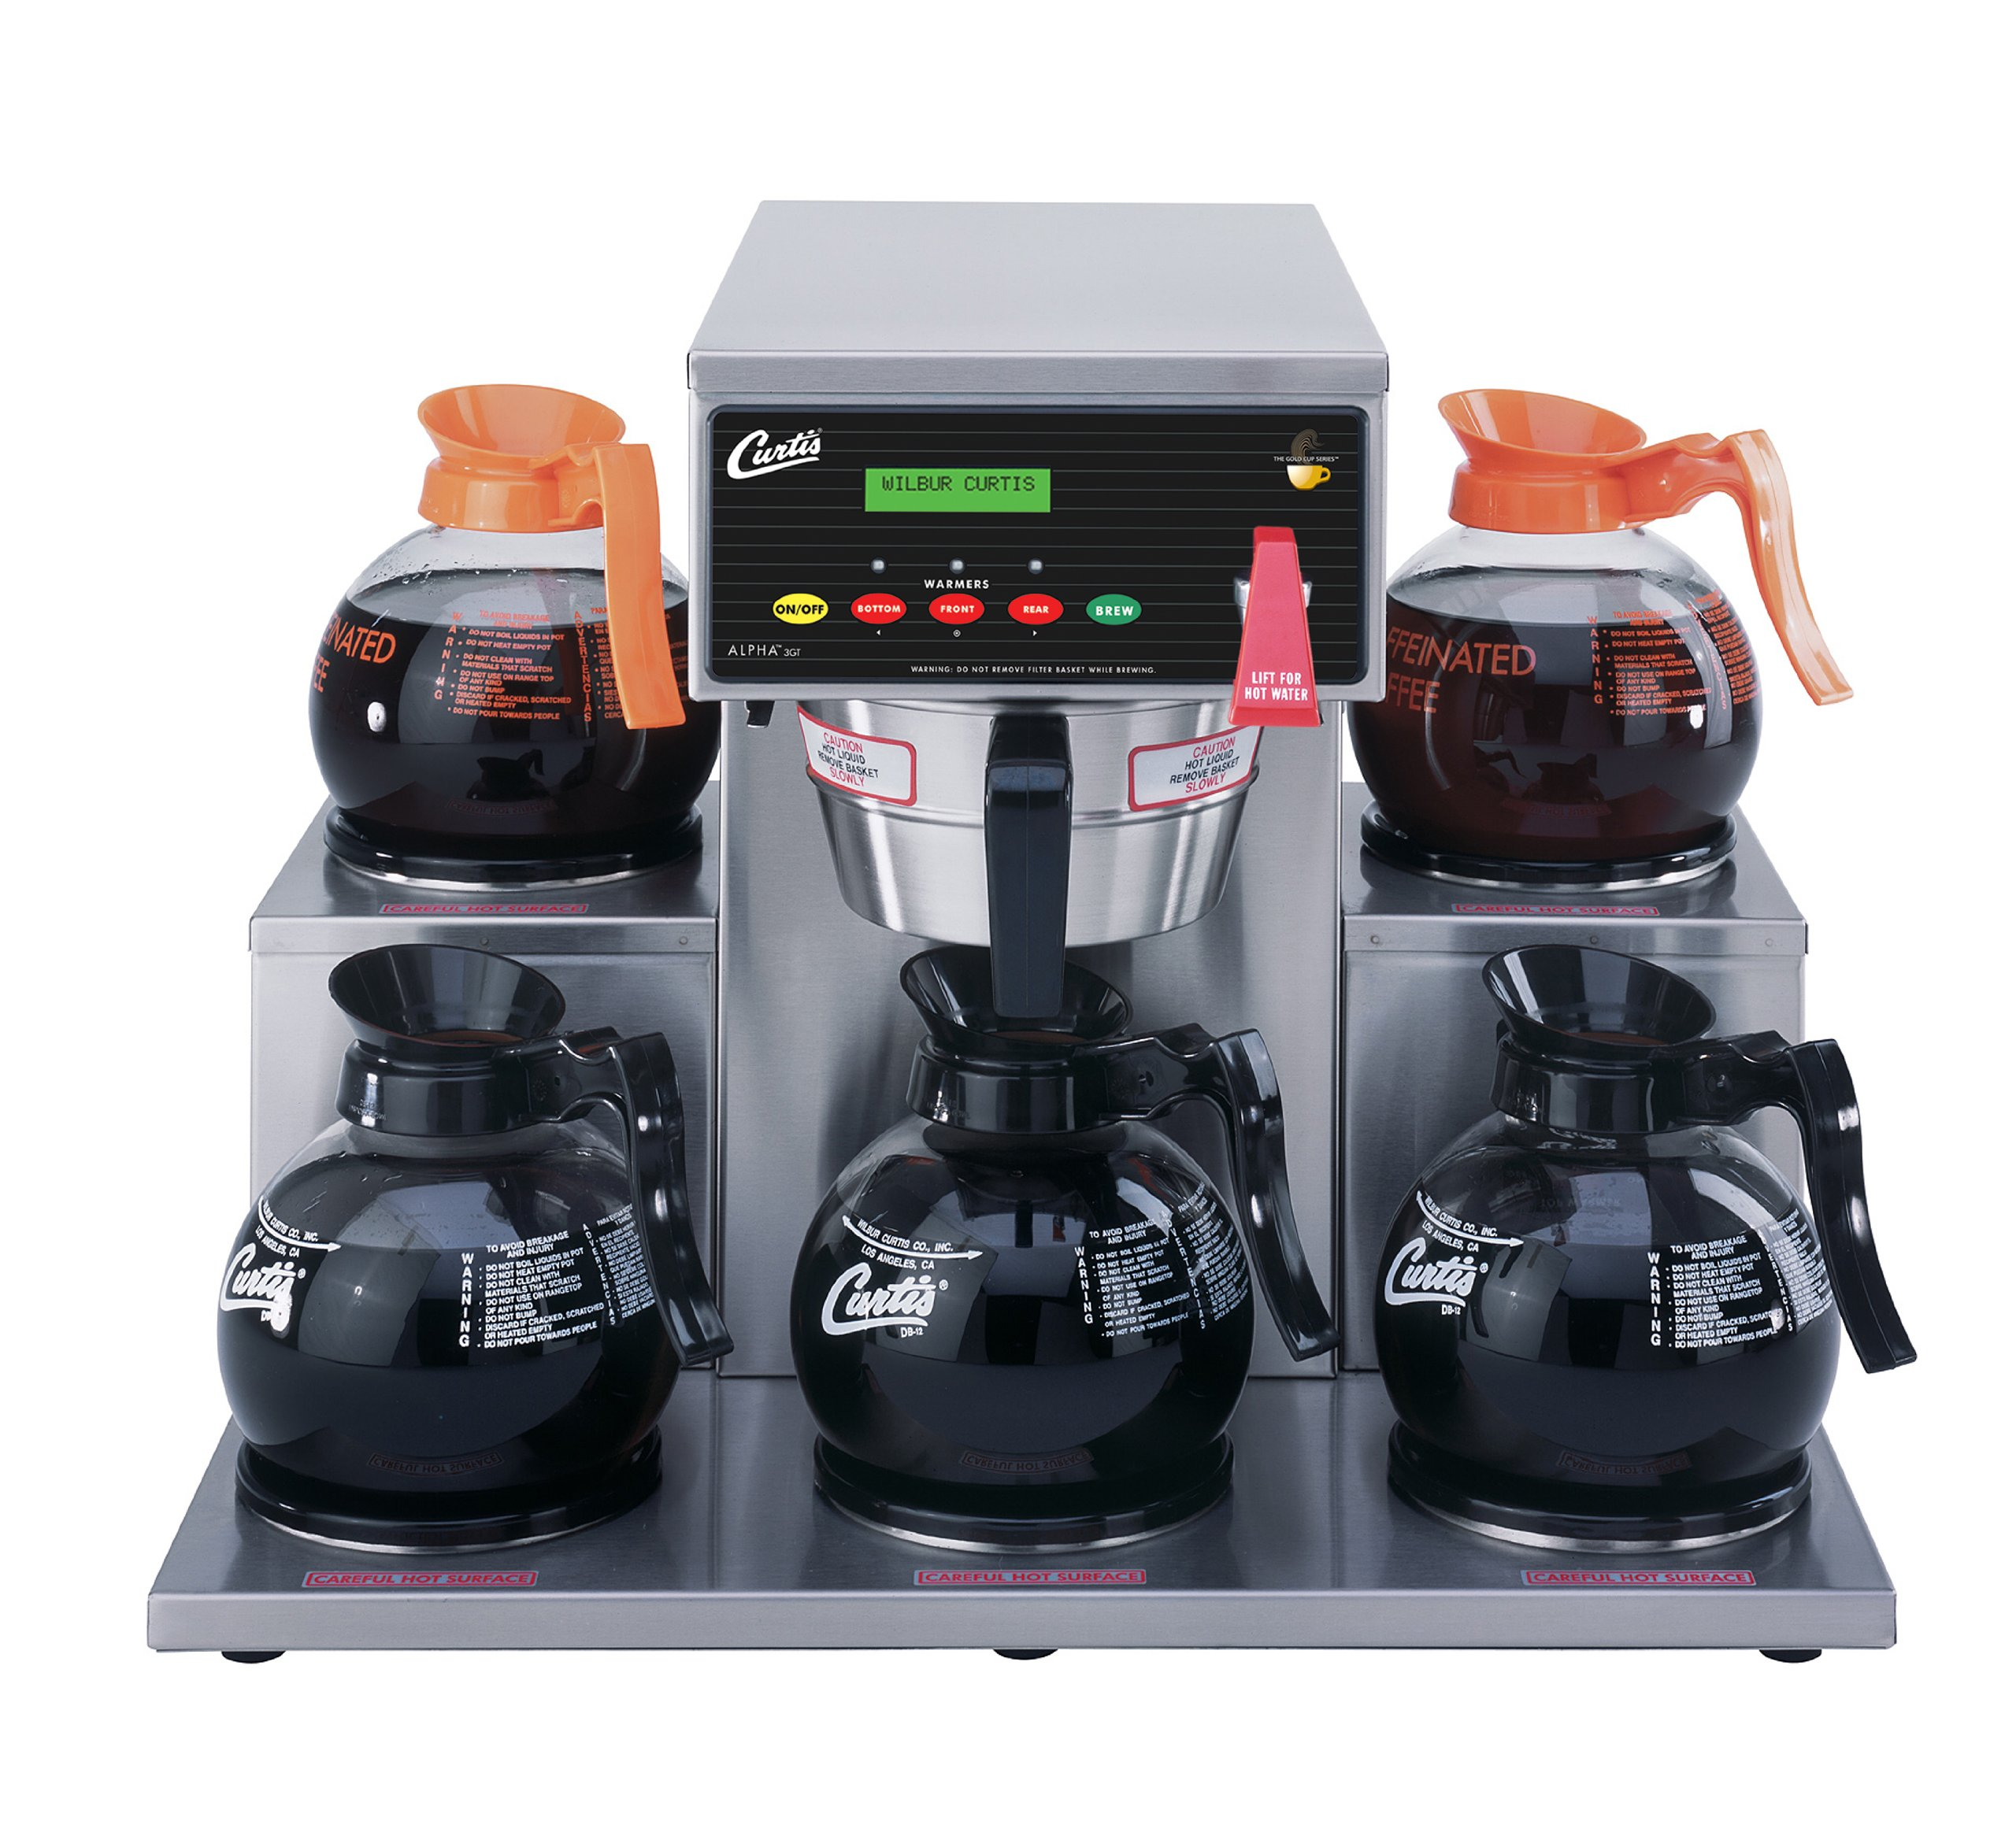 Wilbur Curtis G3 Alpha Decanter Brewer 64 Oz Coffee Brewer, 5 Station, 5 Lower Right and Left Warmers - Commercial Coffee Brewer  - ALP5GT12A000 (Each)